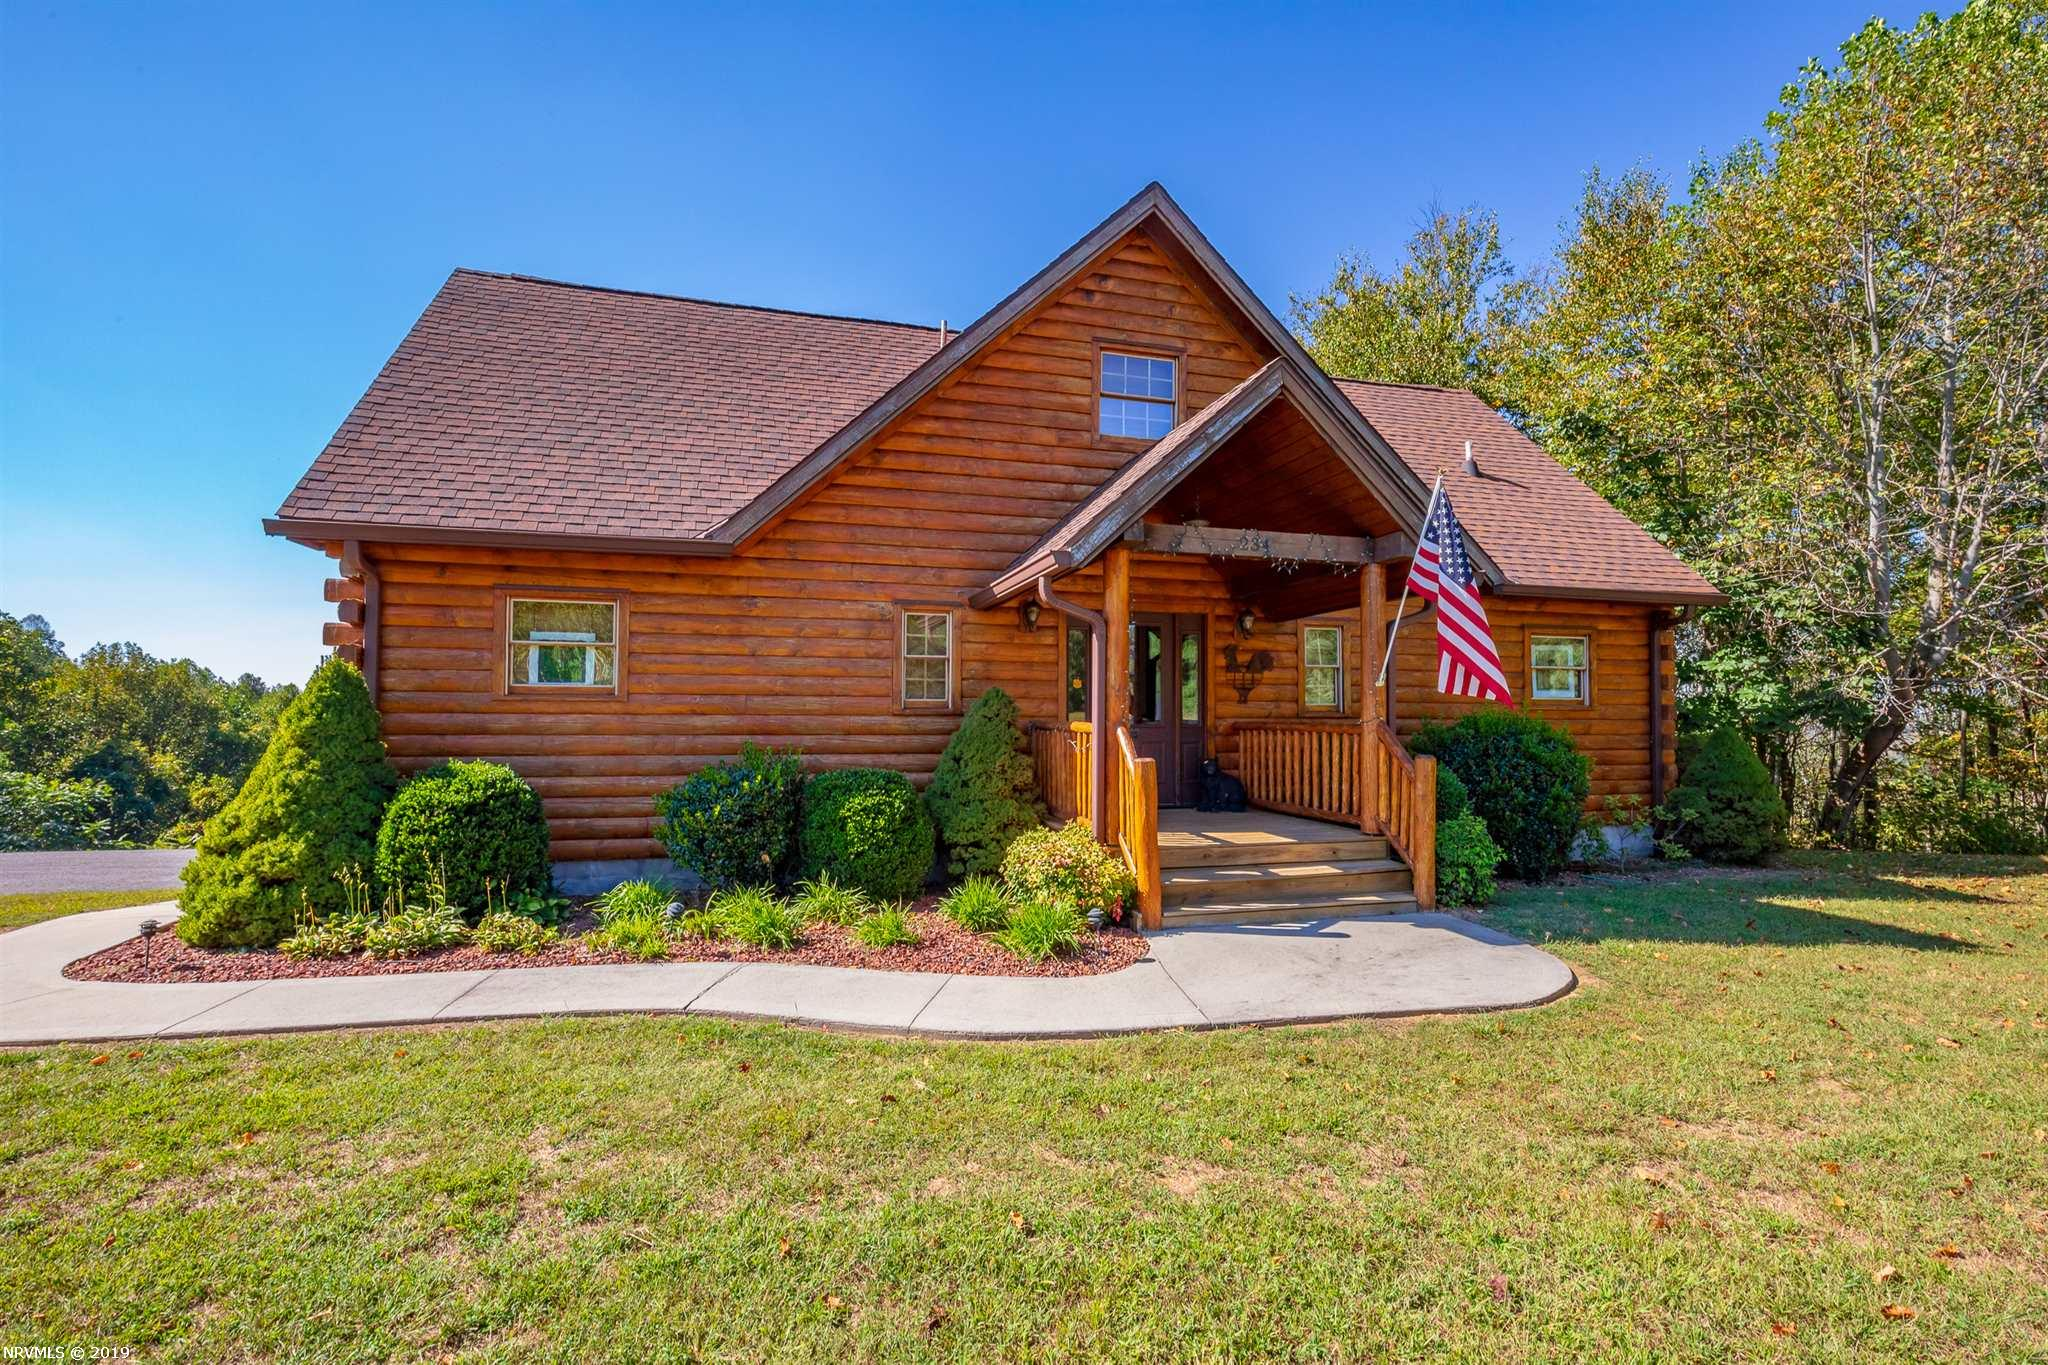 You'll be happy you waited for a chance to see this view! Beautiful, IMMACULATE log cabin on nearly 2.5 acres with some of the best views in Fancy Gap, yet it's in Hillsville and only 10 mins from amenities!! One of the most prestigious neighborhoods in the county. It's just about perfect, 3 beds 3 bathrooms with Master on main level. Beautiful stacked stone fireplace in living room, and gorgeous new windows. Open concept living with laundry on main level as well. You have the perfect amount of privacy so if you're thinking full time living or second home you won't be disappointed with the cathedral ceilings and openness of this cabin. Upstairs you have two bedrooms with builtin dressers and bathroom. Don't wait! This one won't last!!!